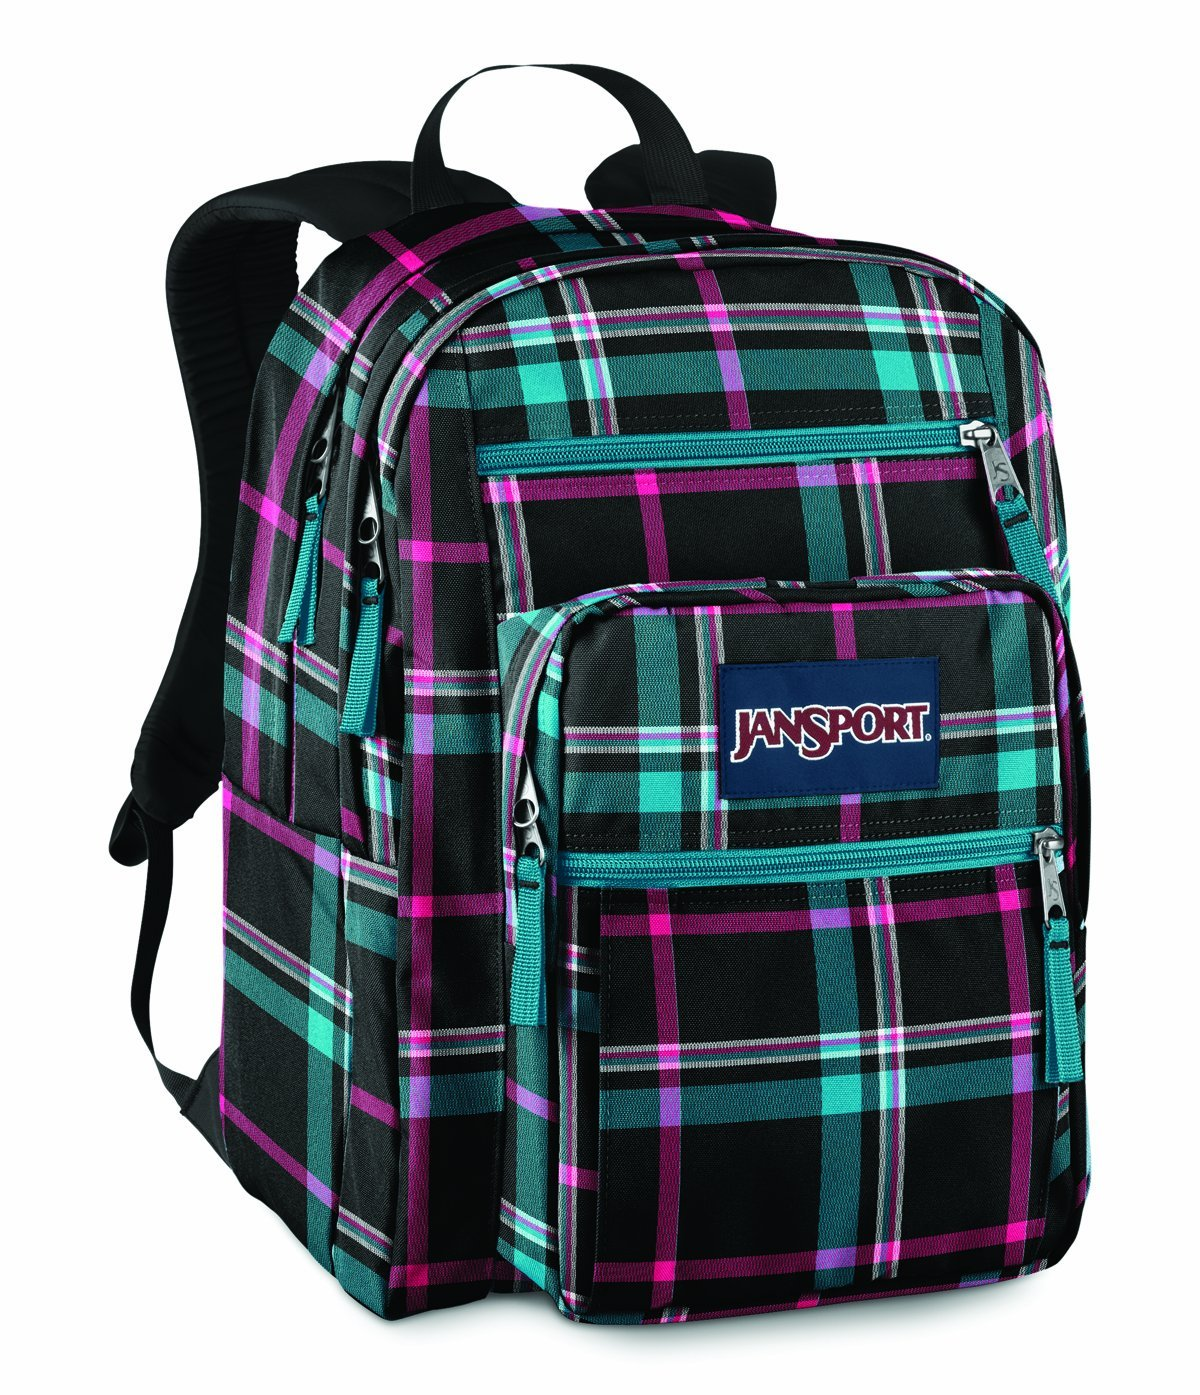 Backpacks For Girls Jansport CdVybQtg